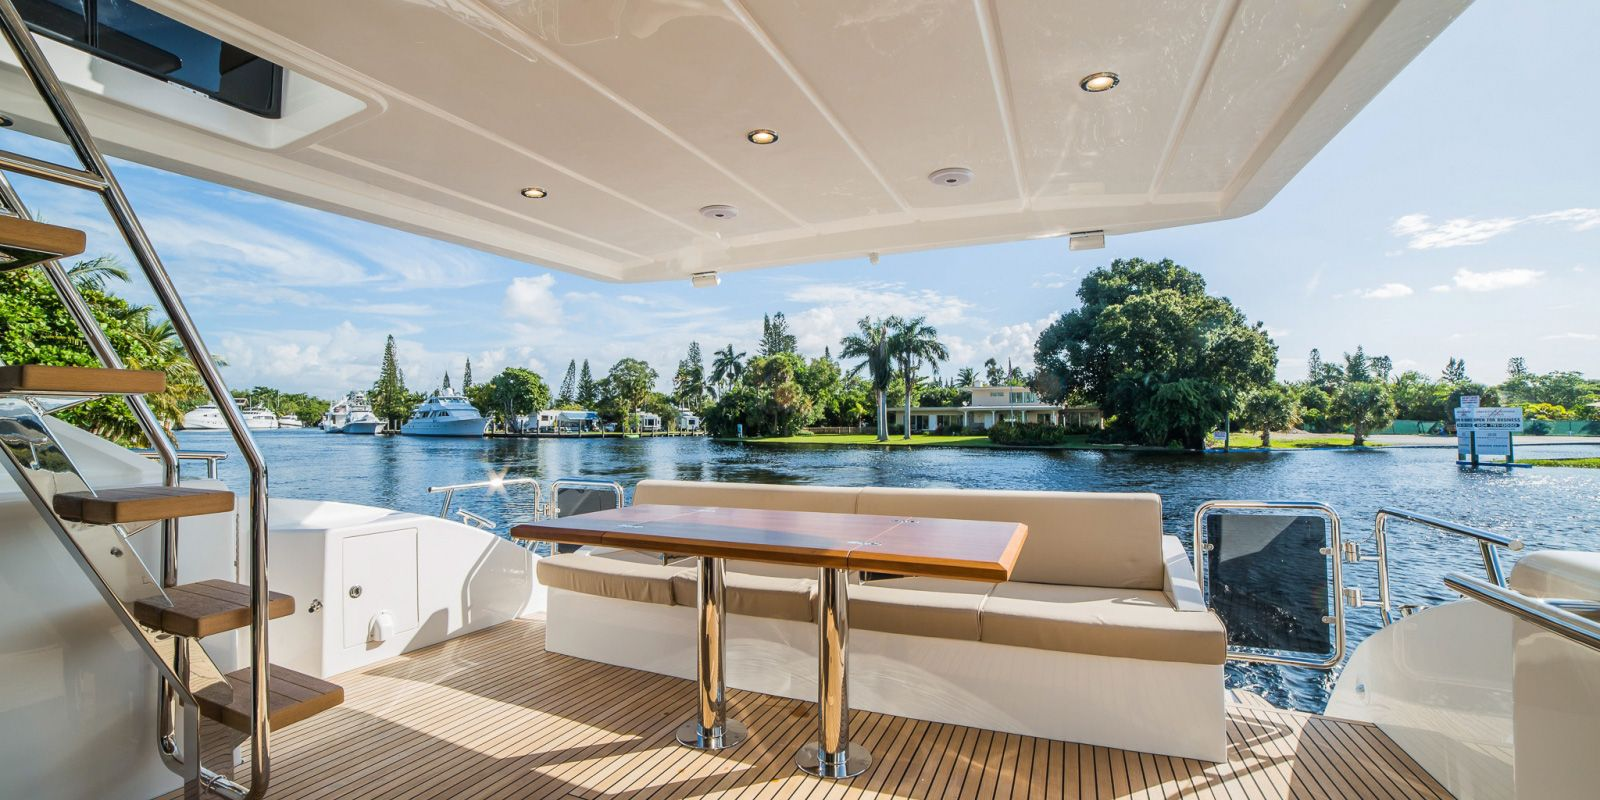 Al fresco dining is partially shaded by the extended flybridge overhang.